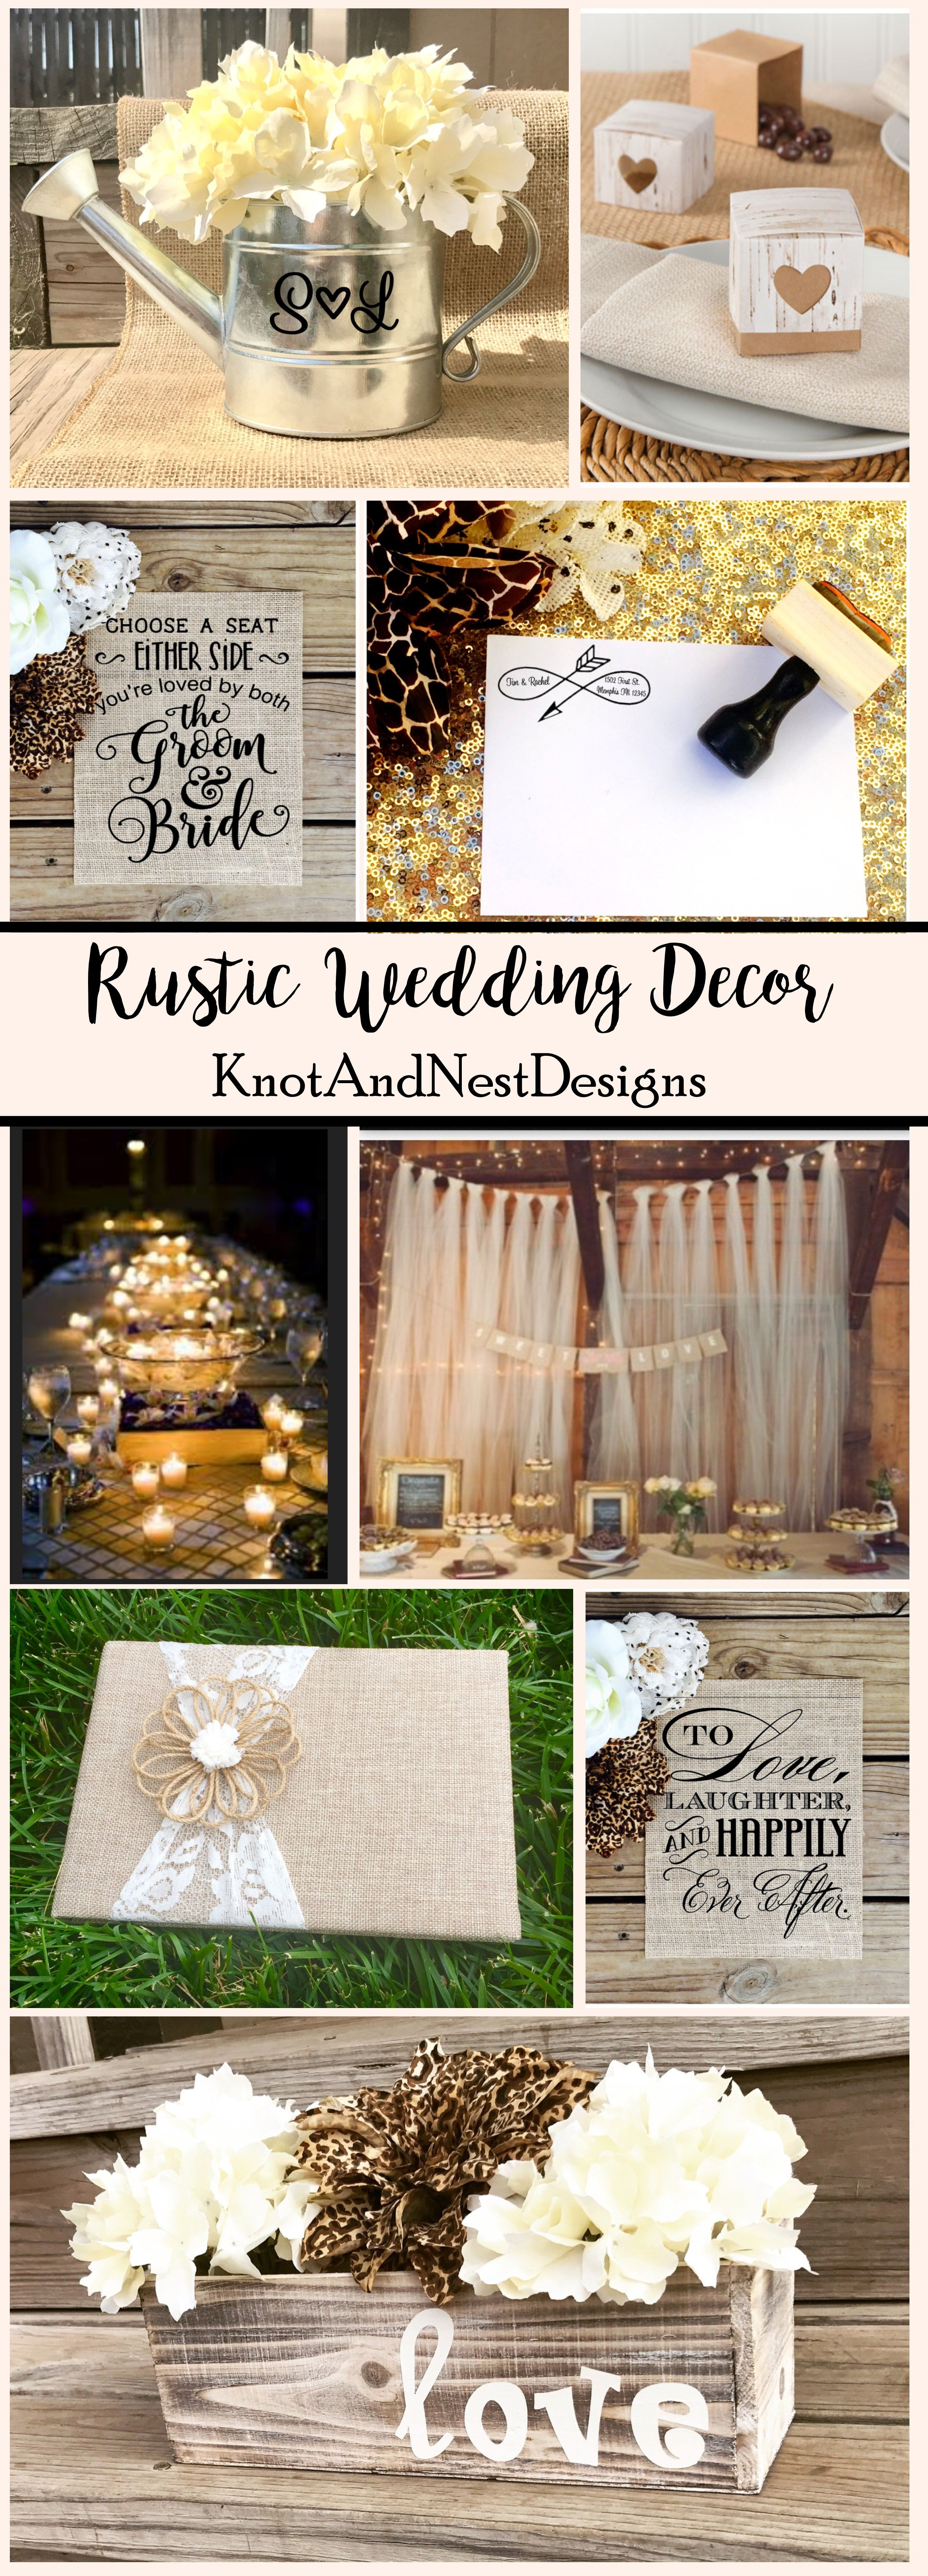 Wedding decorations tulle and lights october 2018 Pin by Felicia Esgro on rustic wedding  Pinterest  Wedding